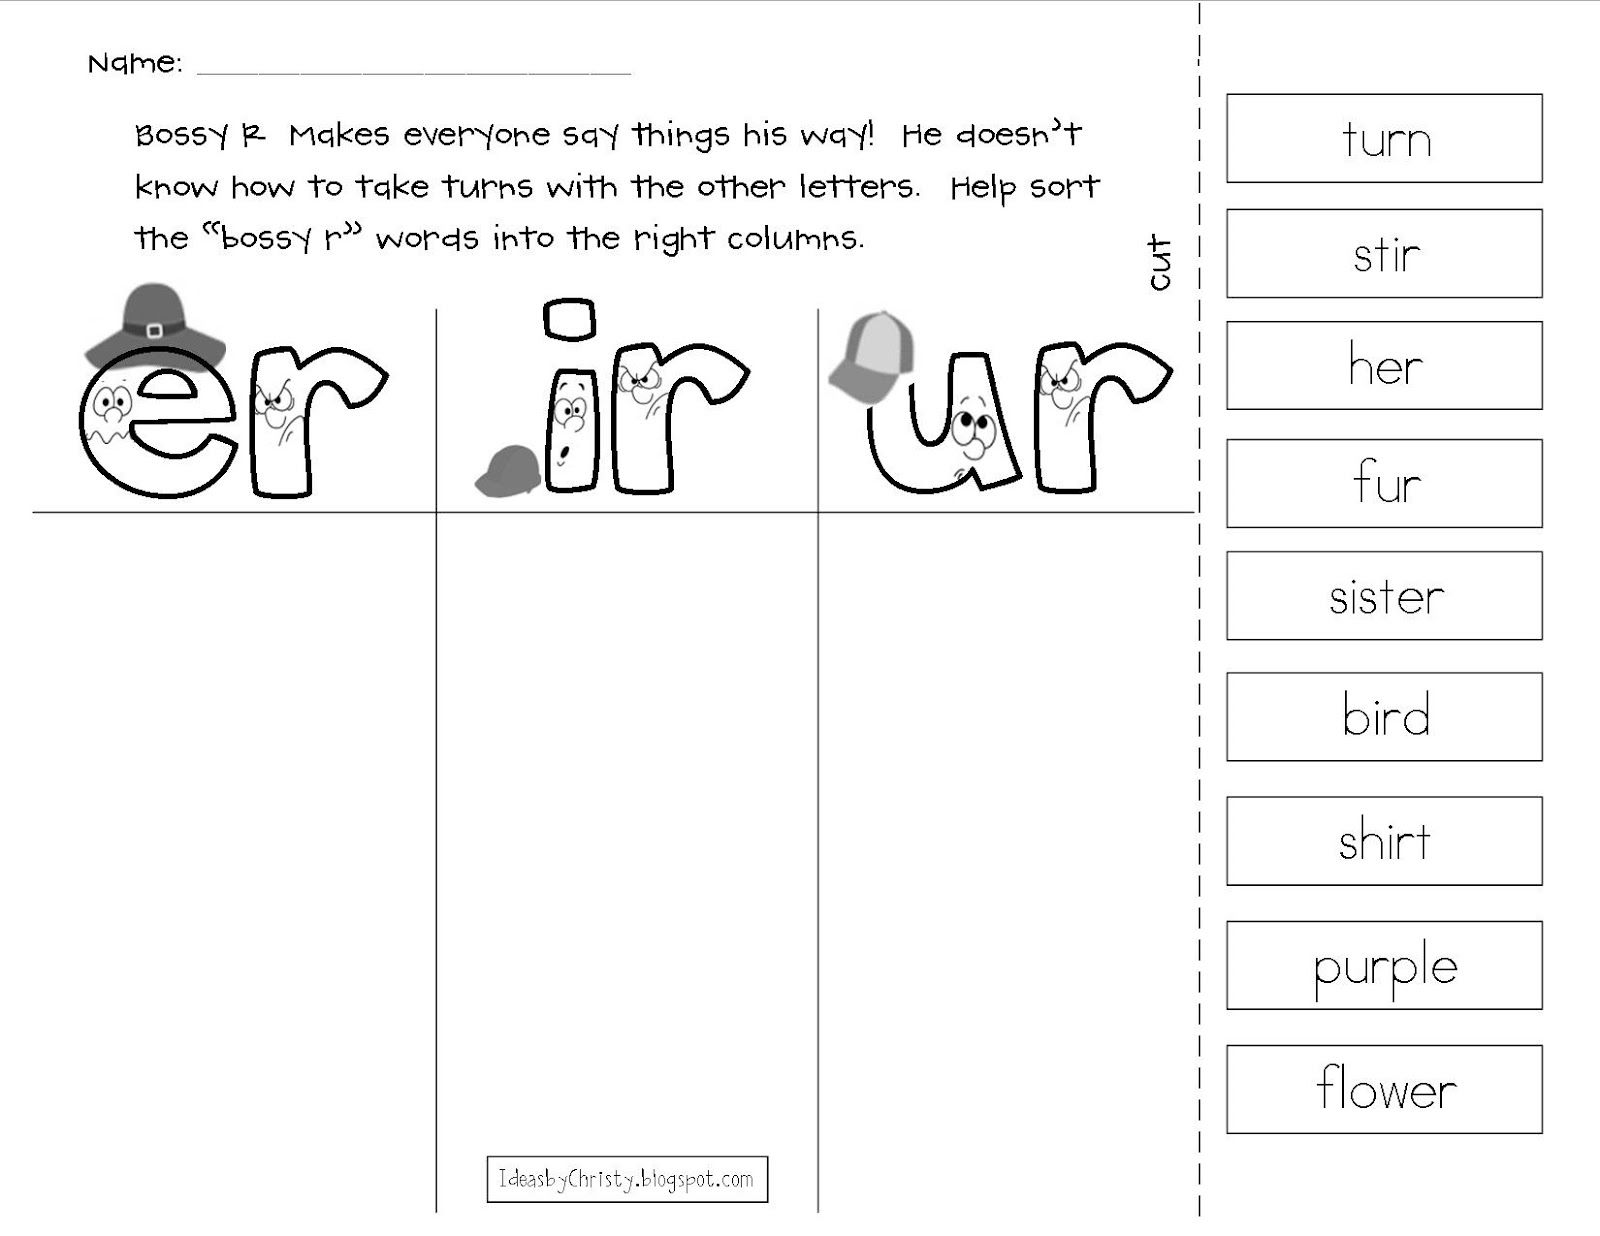 worksheet Bossy R Worksheets ideas by christy bossy r pairs er ir ur pinterest ur